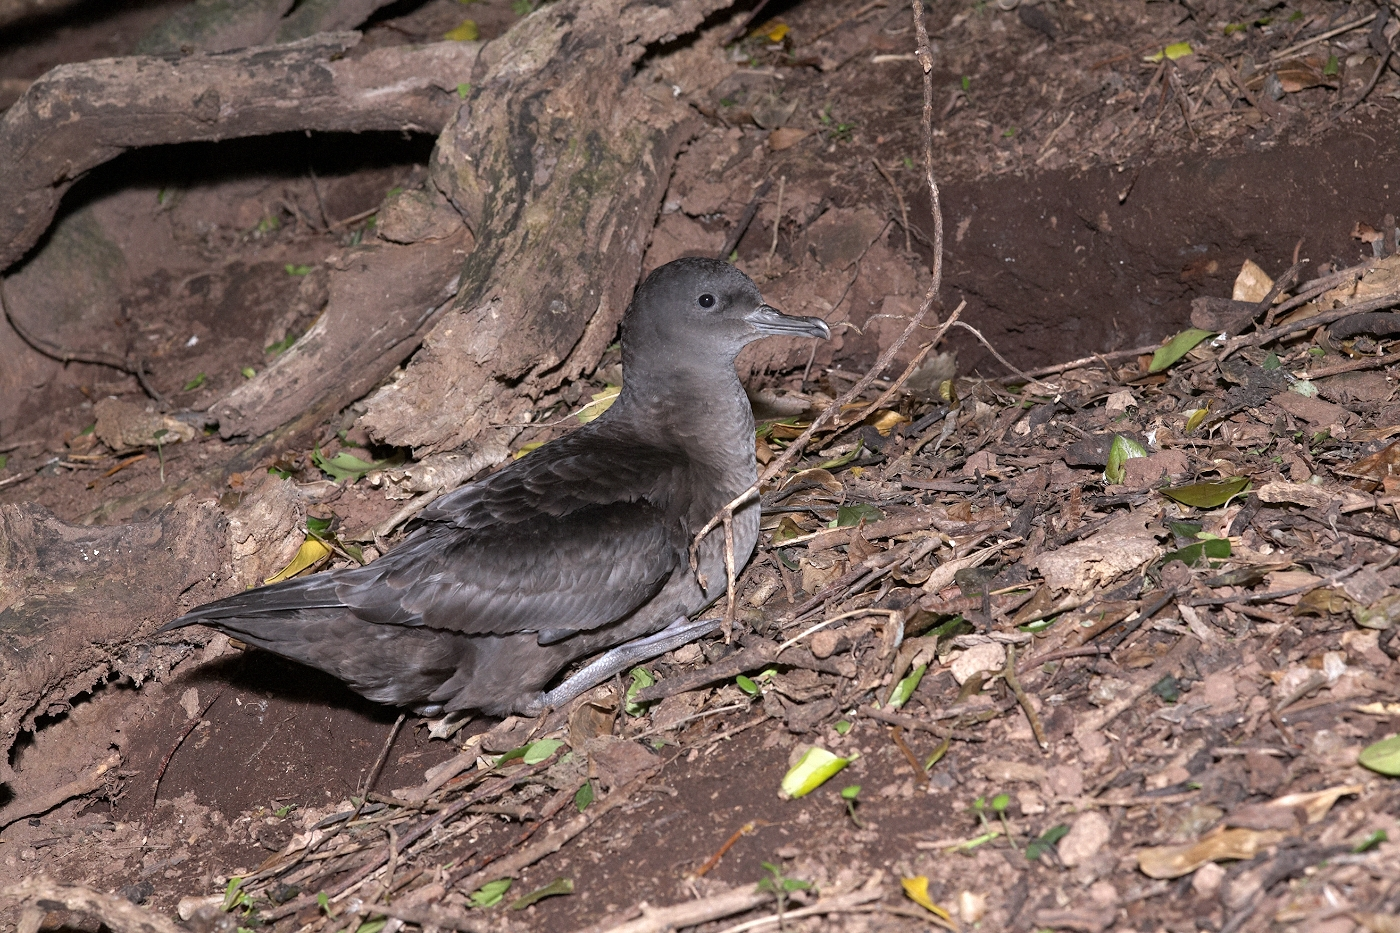 Sooty shearwaters are the most common seabird found at Titi island. Photograph by Jean-Claude Stahl. © Te Papa